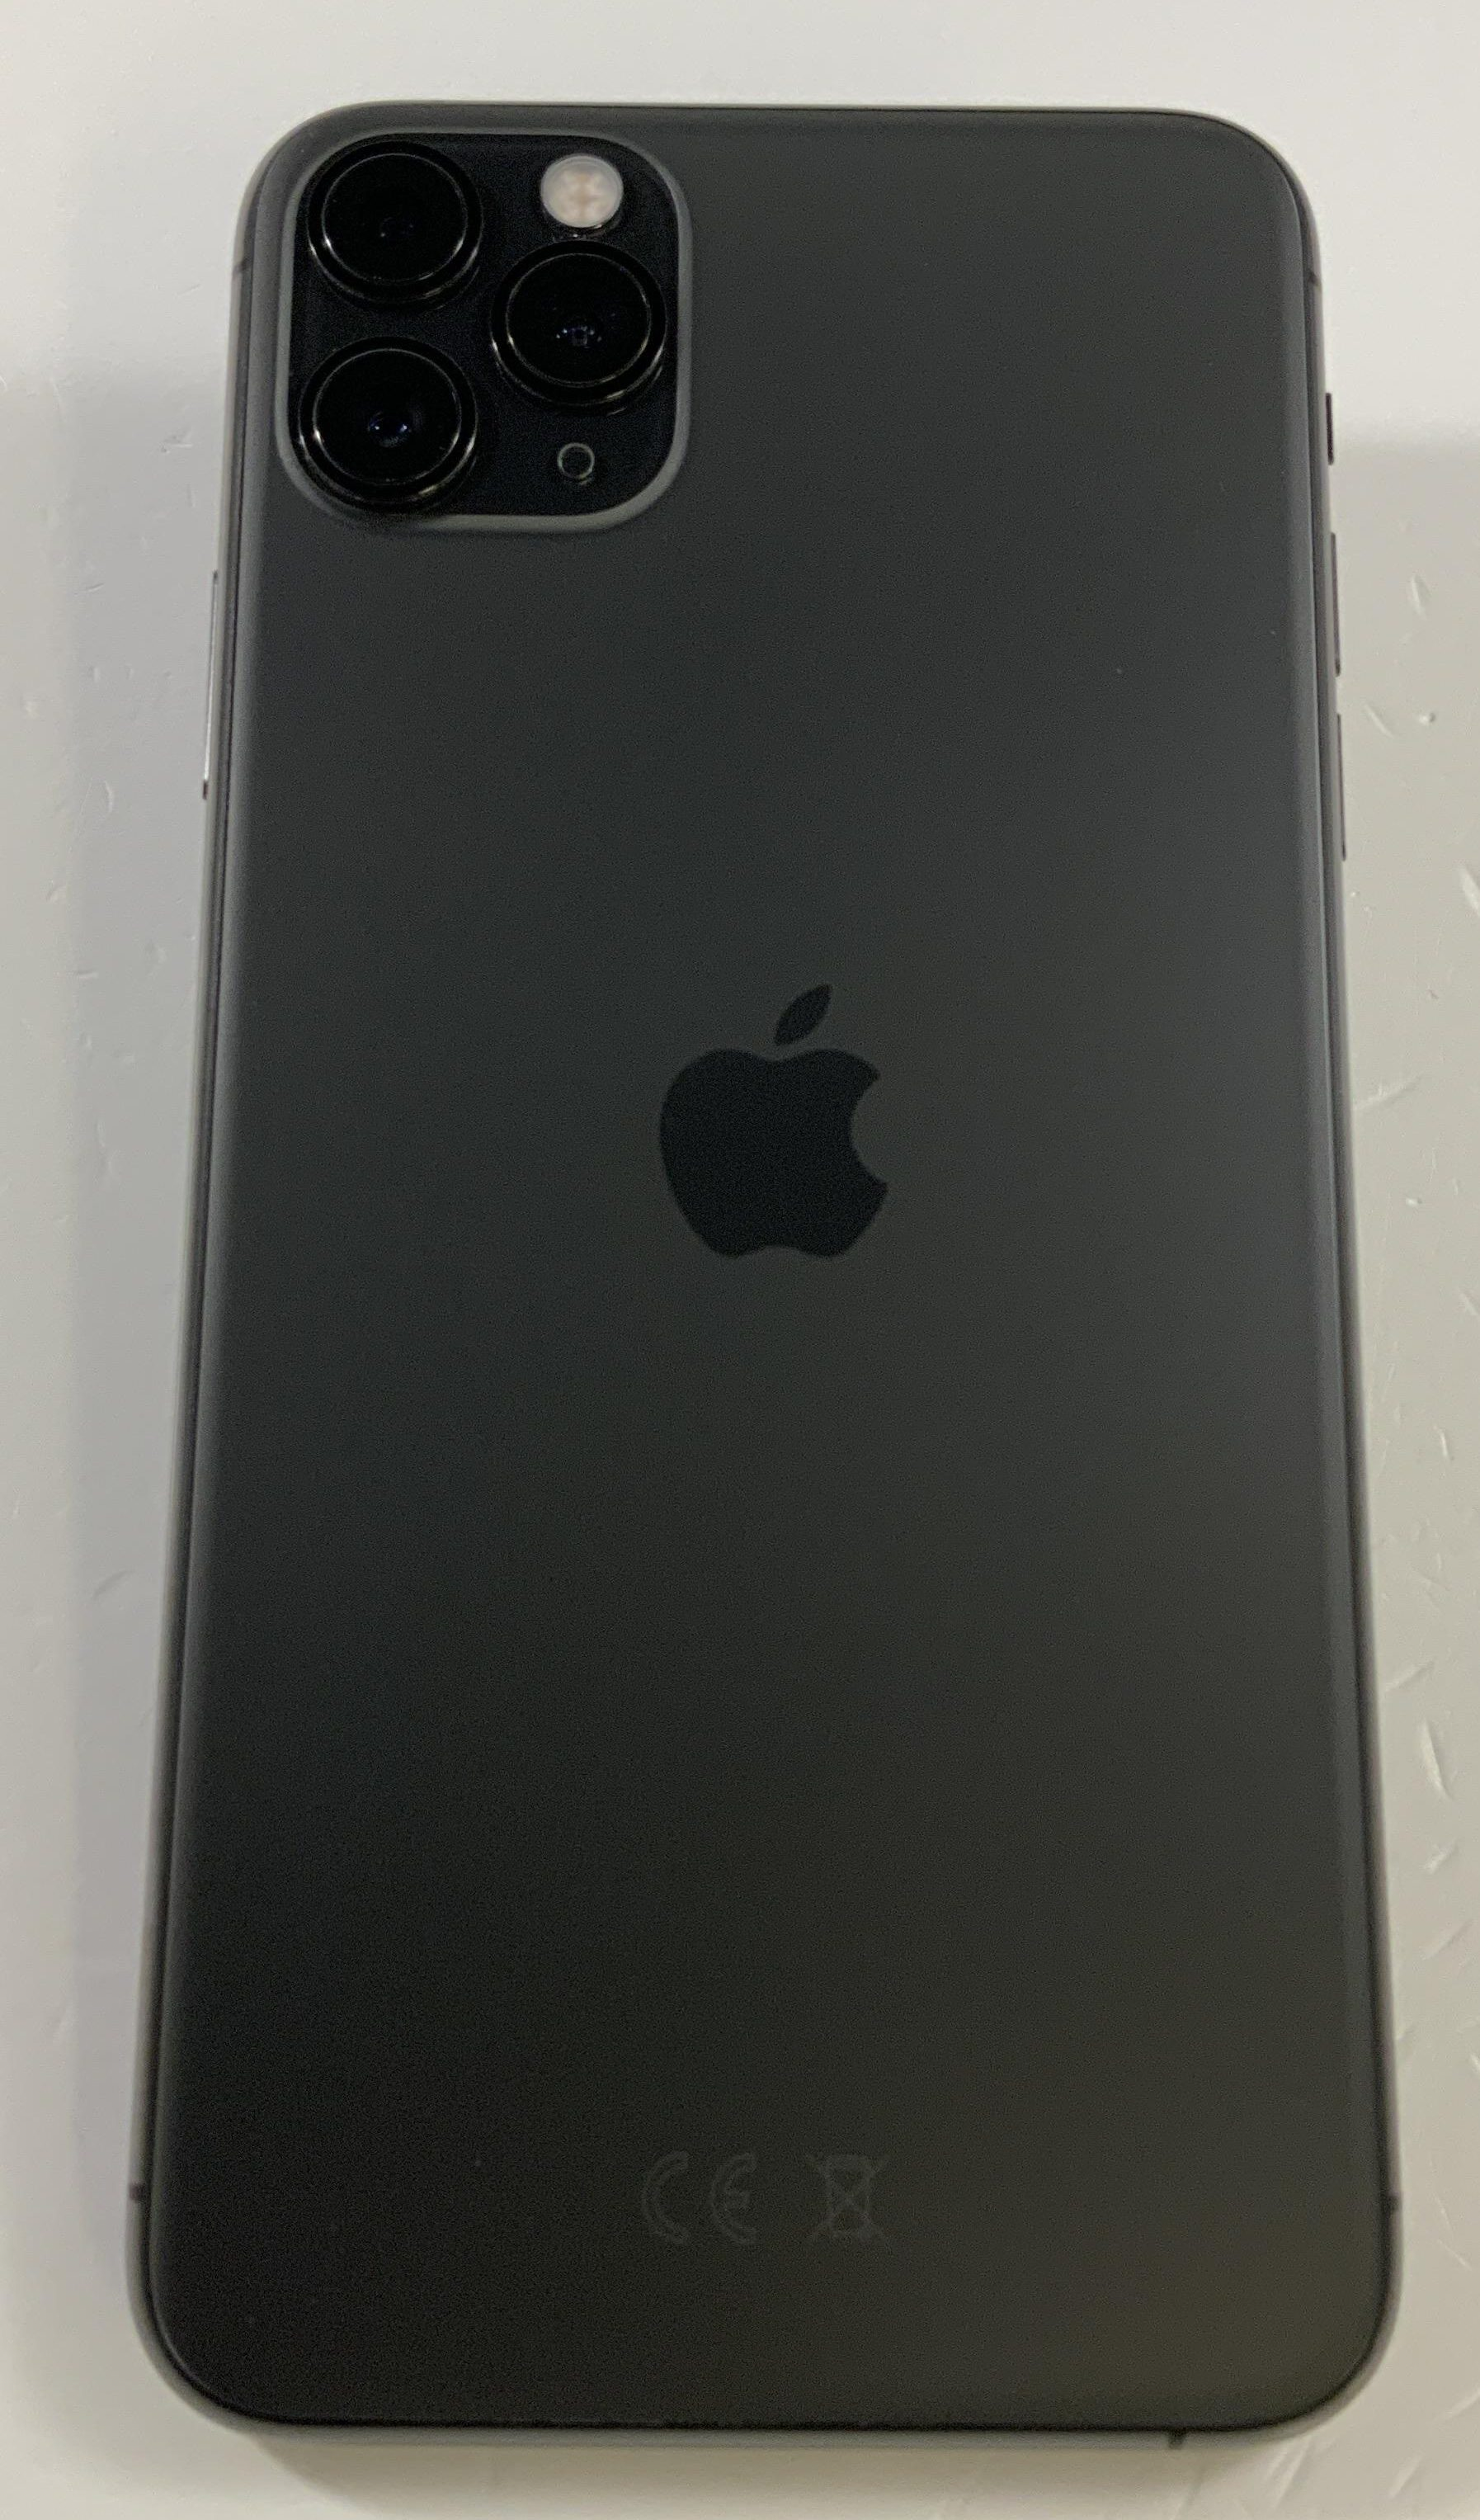 iPhone 11 Pro Max 256GB, 256GB, Space Gray, Bild 2